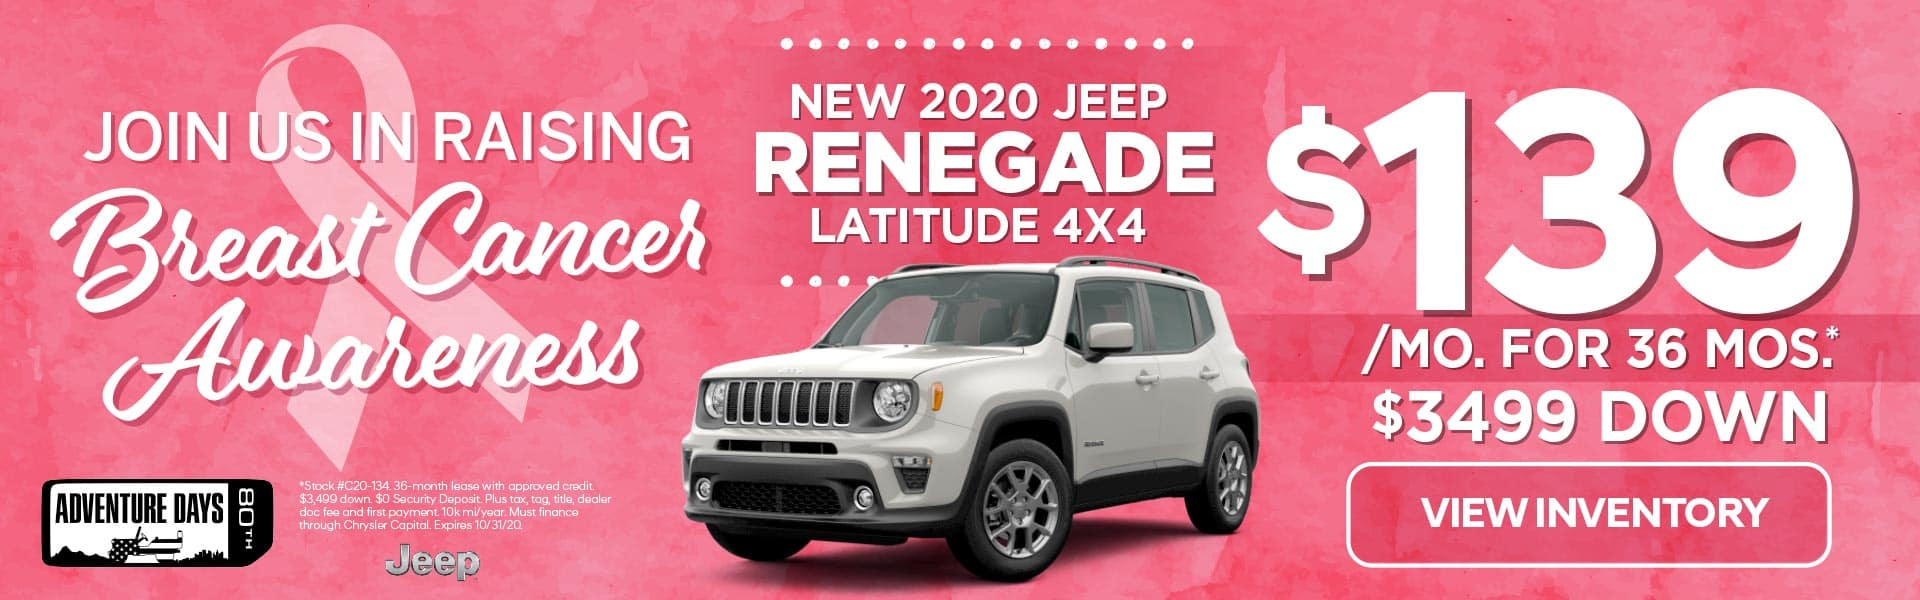 2020 Jeep Renegade Latitude 4x4 $139 x 36 mths with $3499 down (plus taxes, license/title, doc fee)